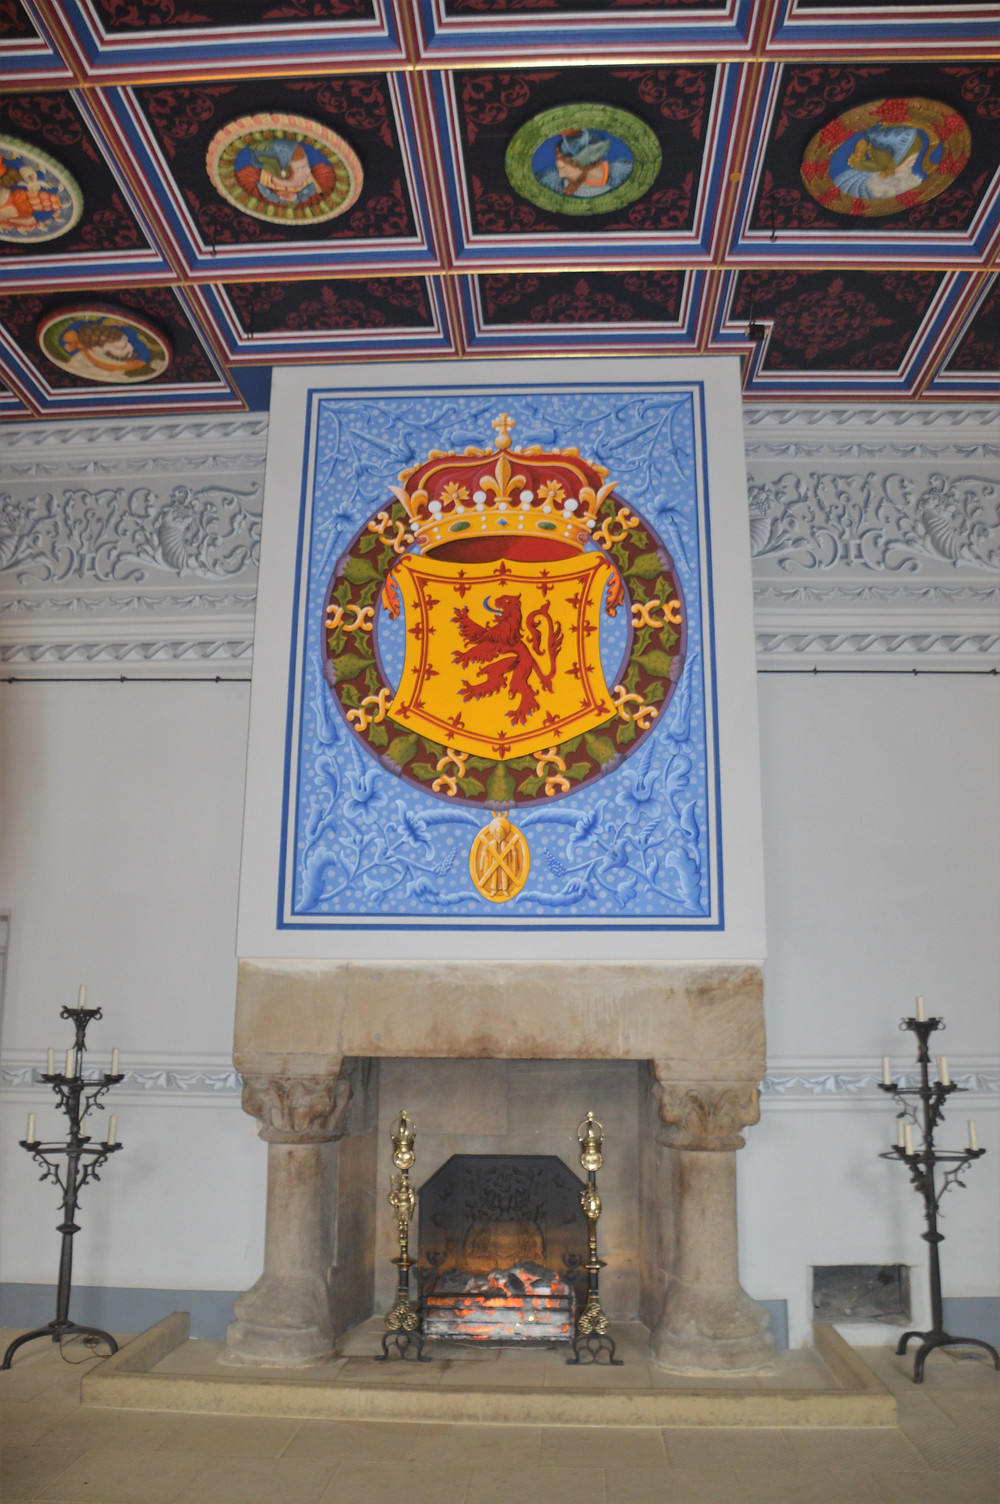 Hanging over the fireplace in the King's Inner Hall of Stirling Castle is the Royal Arms of Scotland with the Rampant Lion